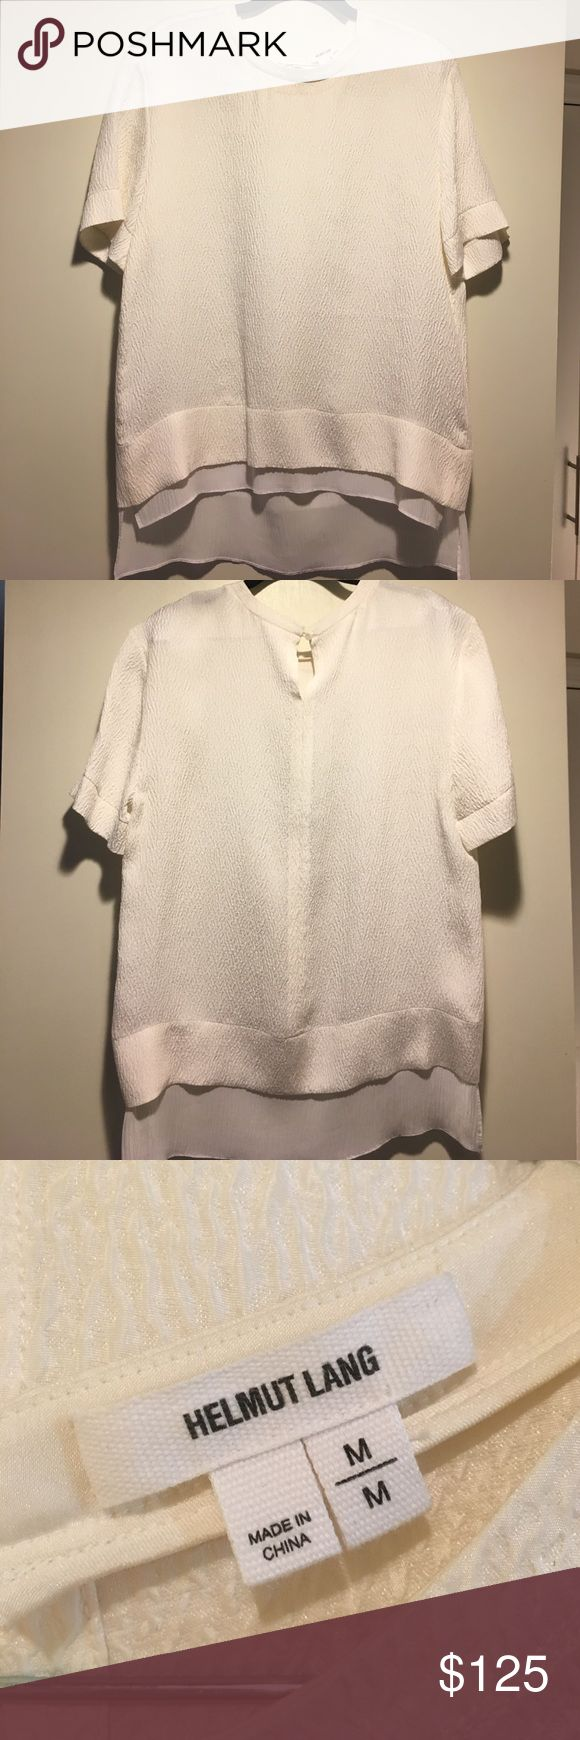 NWOT Helmut Lang blouse NWOT beautiful white Helmut Lang silk blouse. Love this top but selling because it's too big for me (bought a medium by mistake). Took the tags off but never wore it. The shell is 100% silk and the bottom layer is a silk/viscose blend. Helmut Lang Tops Blouses